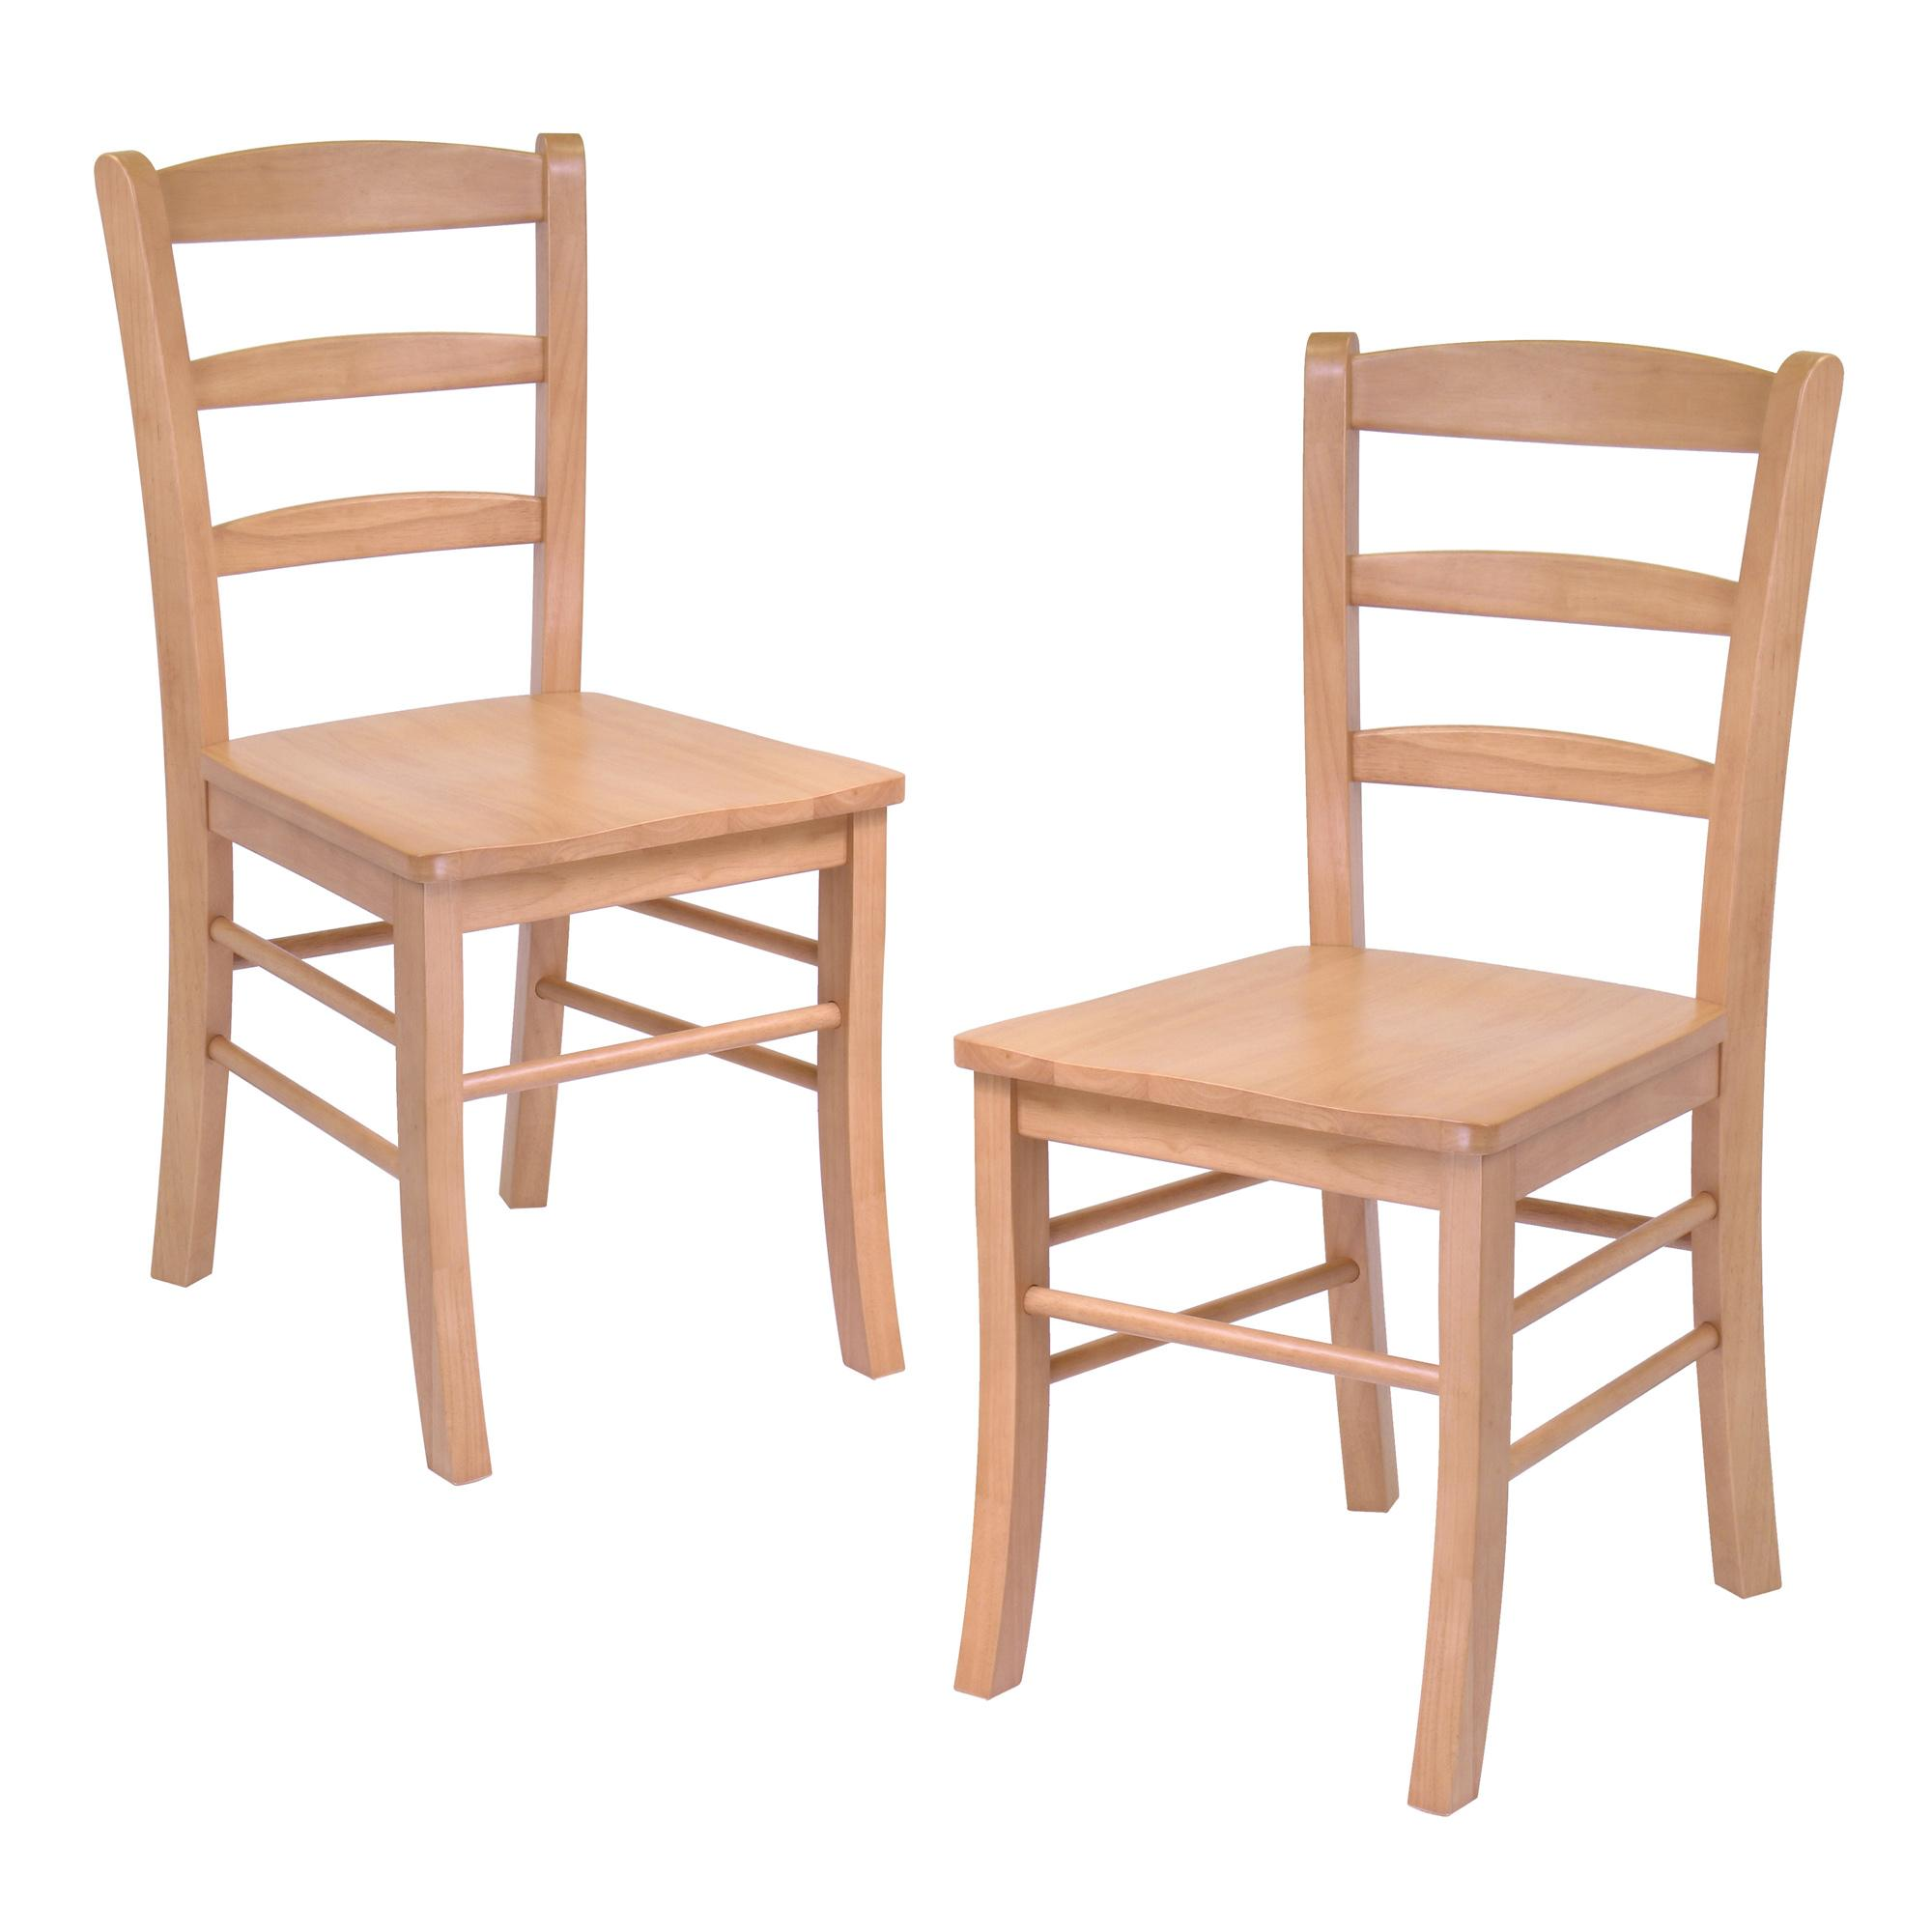 Winsome hannah dining wood side chairs in light oak finish for Kitchen dining room chairs